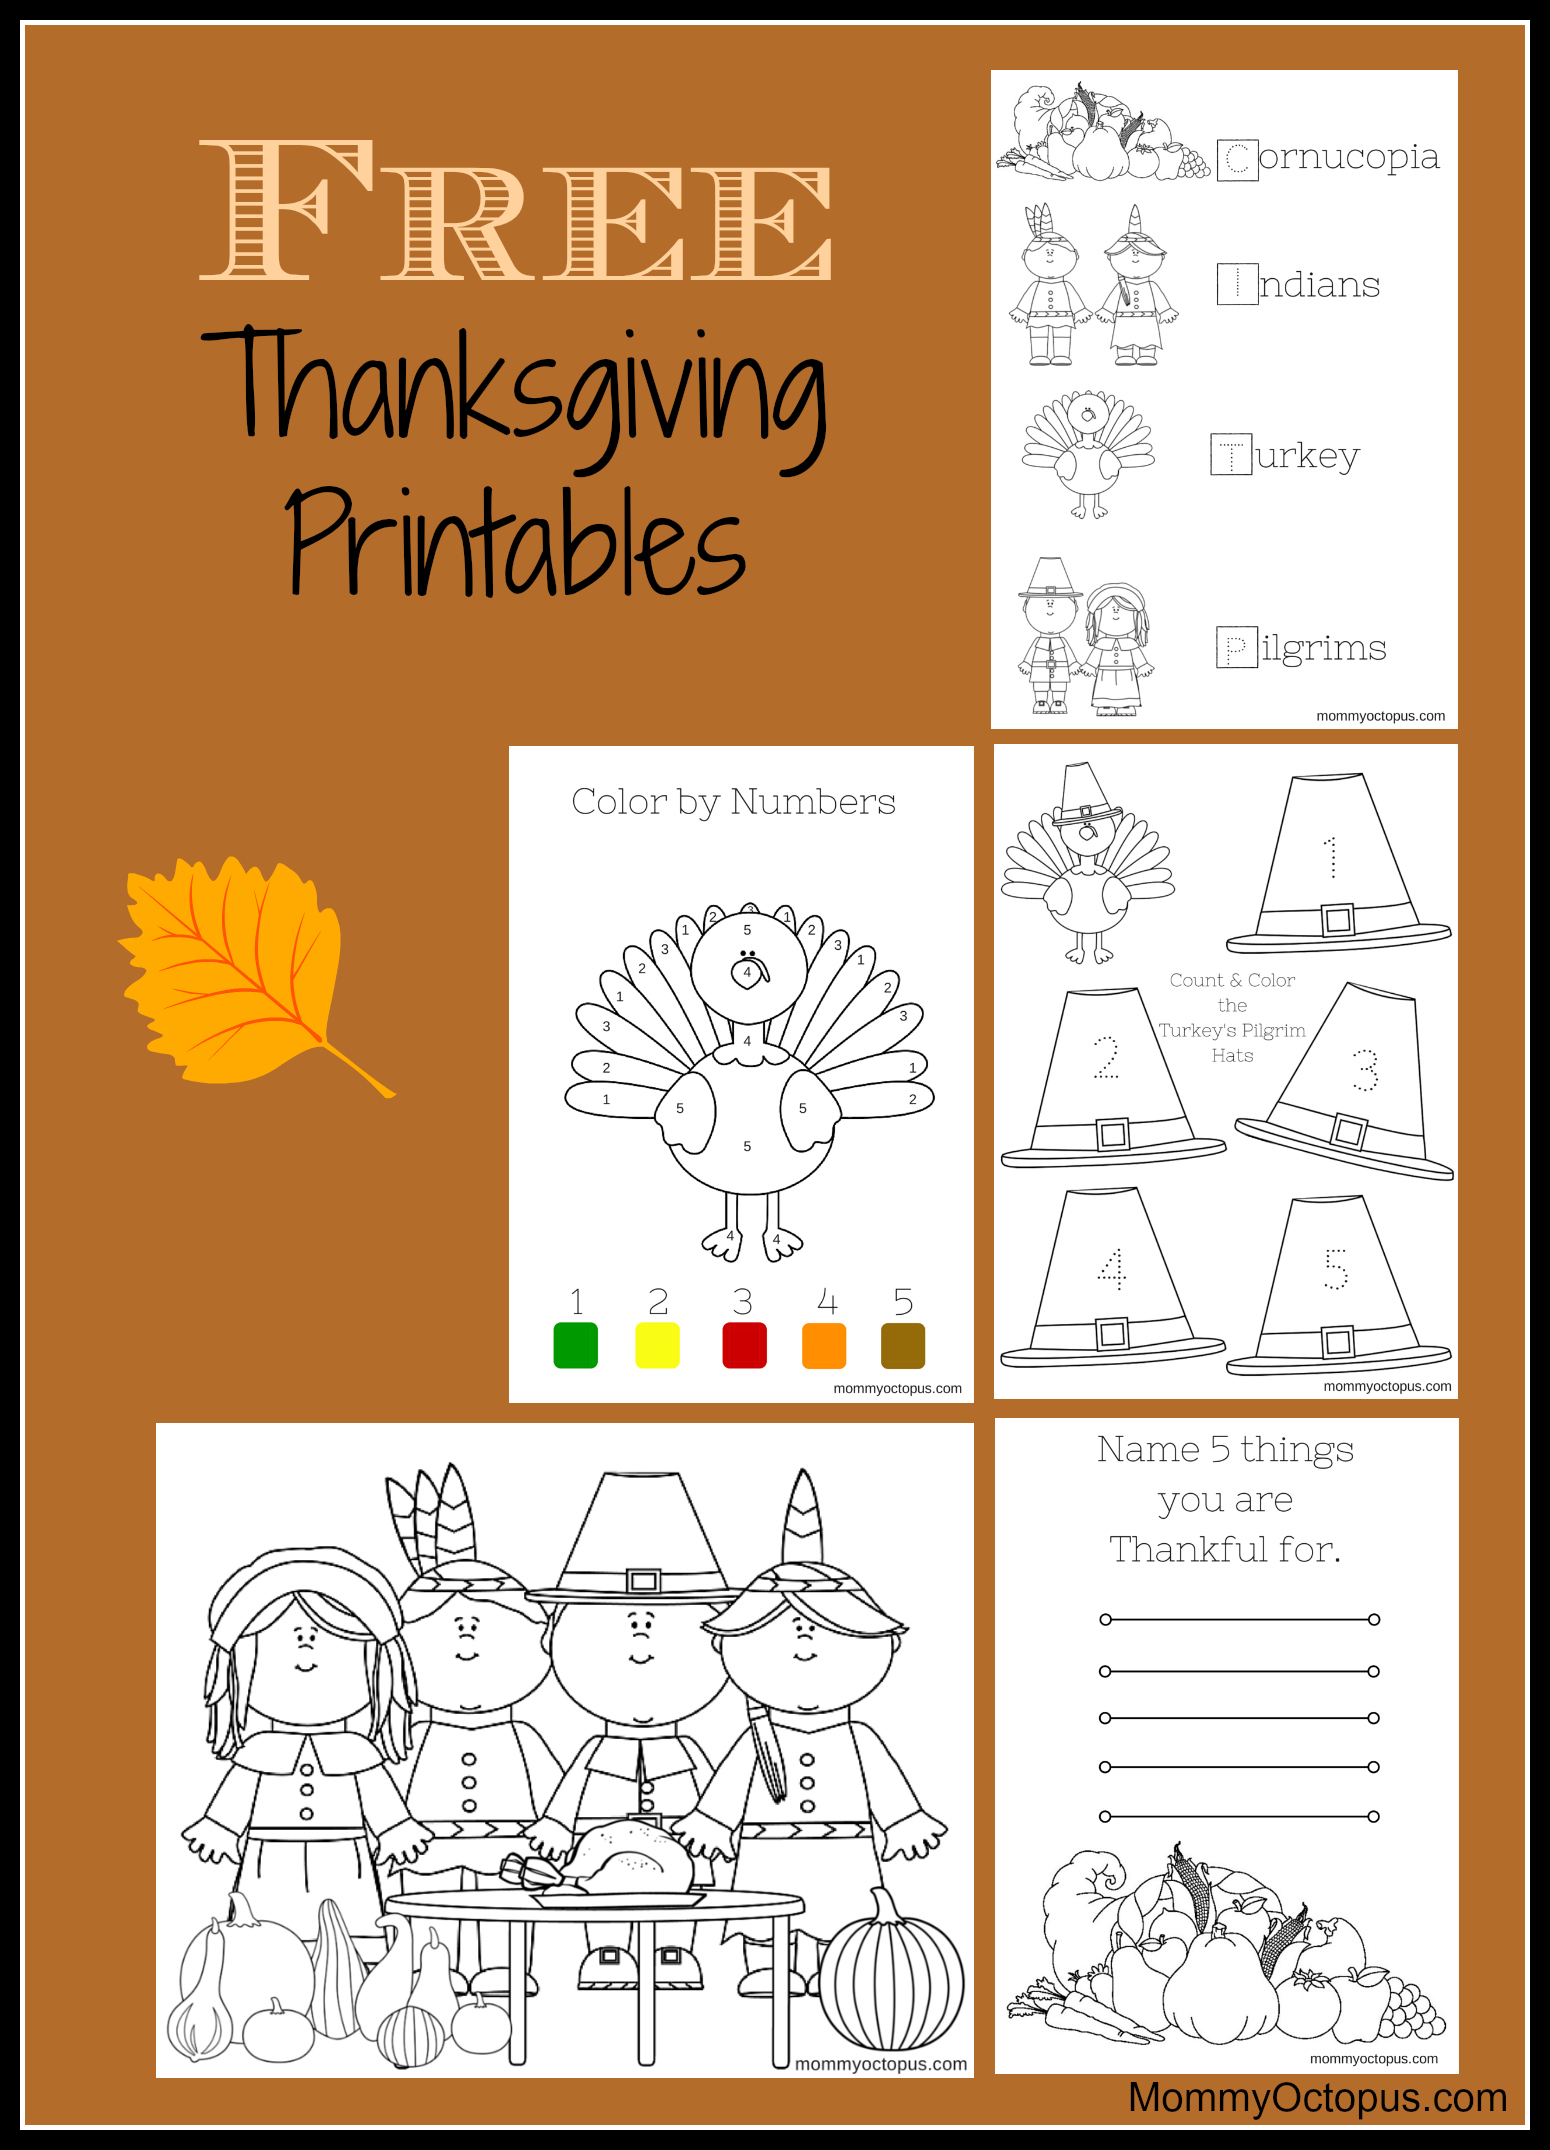 hight resolution of Free Thanksgiving Printable Activity Sheets! - Mommy Octopus